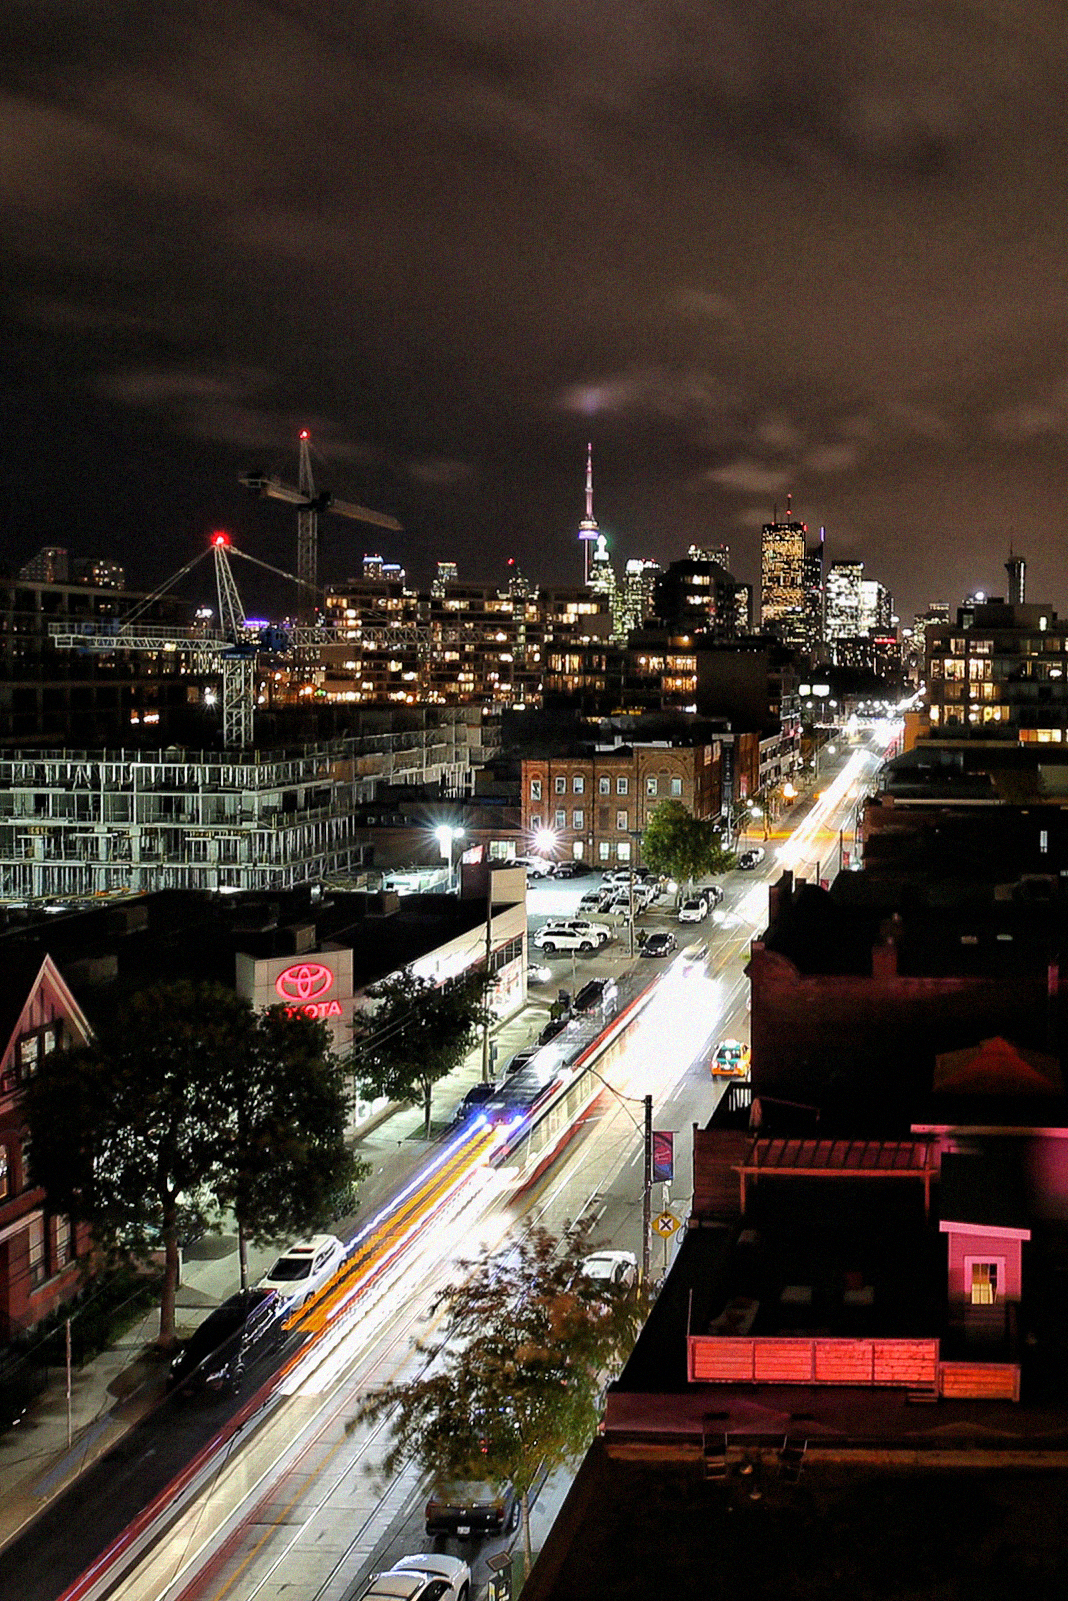 Rooftop view at the _9925.jpg